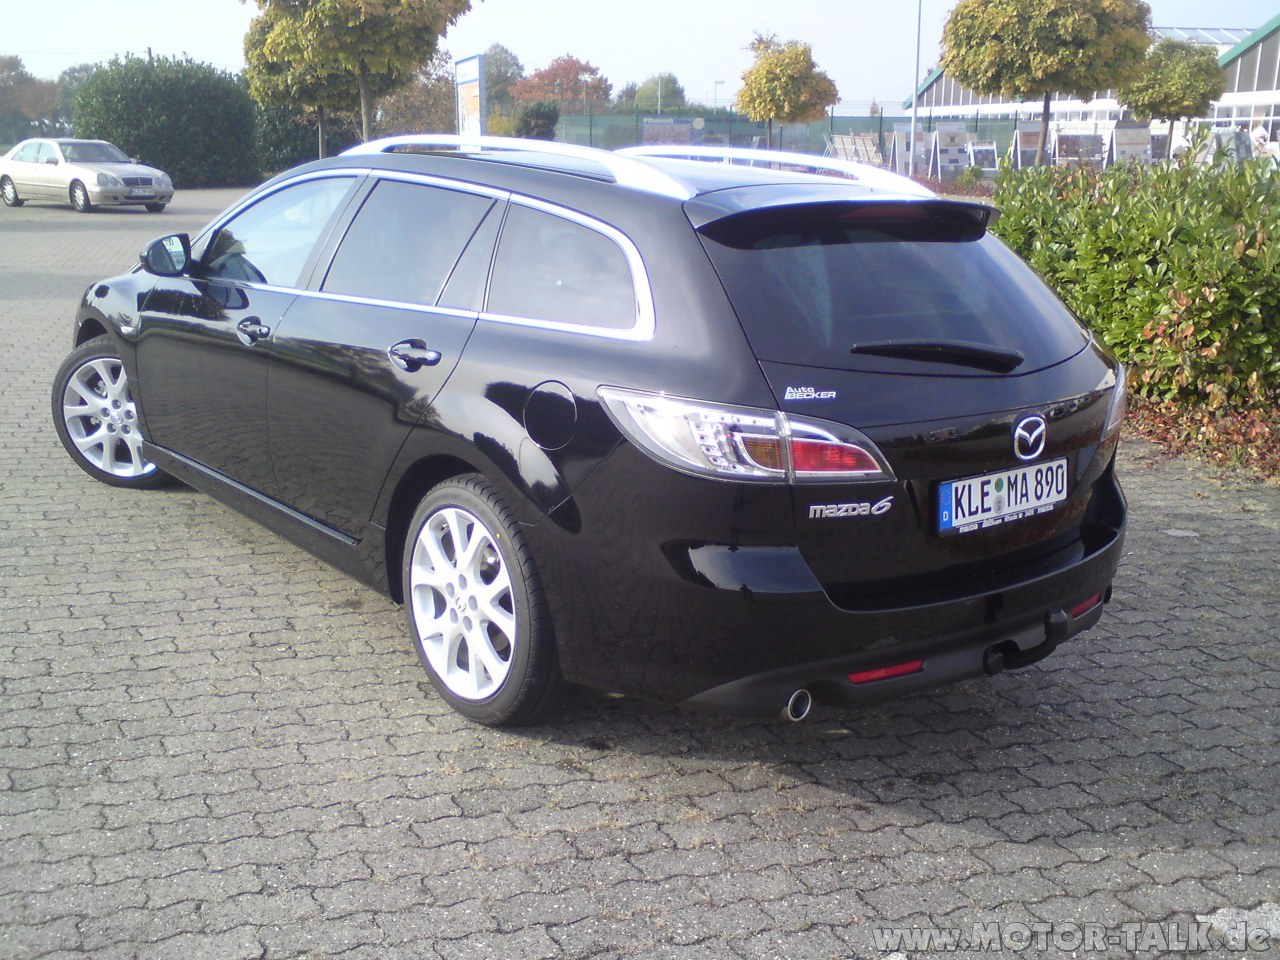 mazda 6 gh r ckleuchten auto bild idee. Black Bedroom Furniture Sets. Home Design Ideas